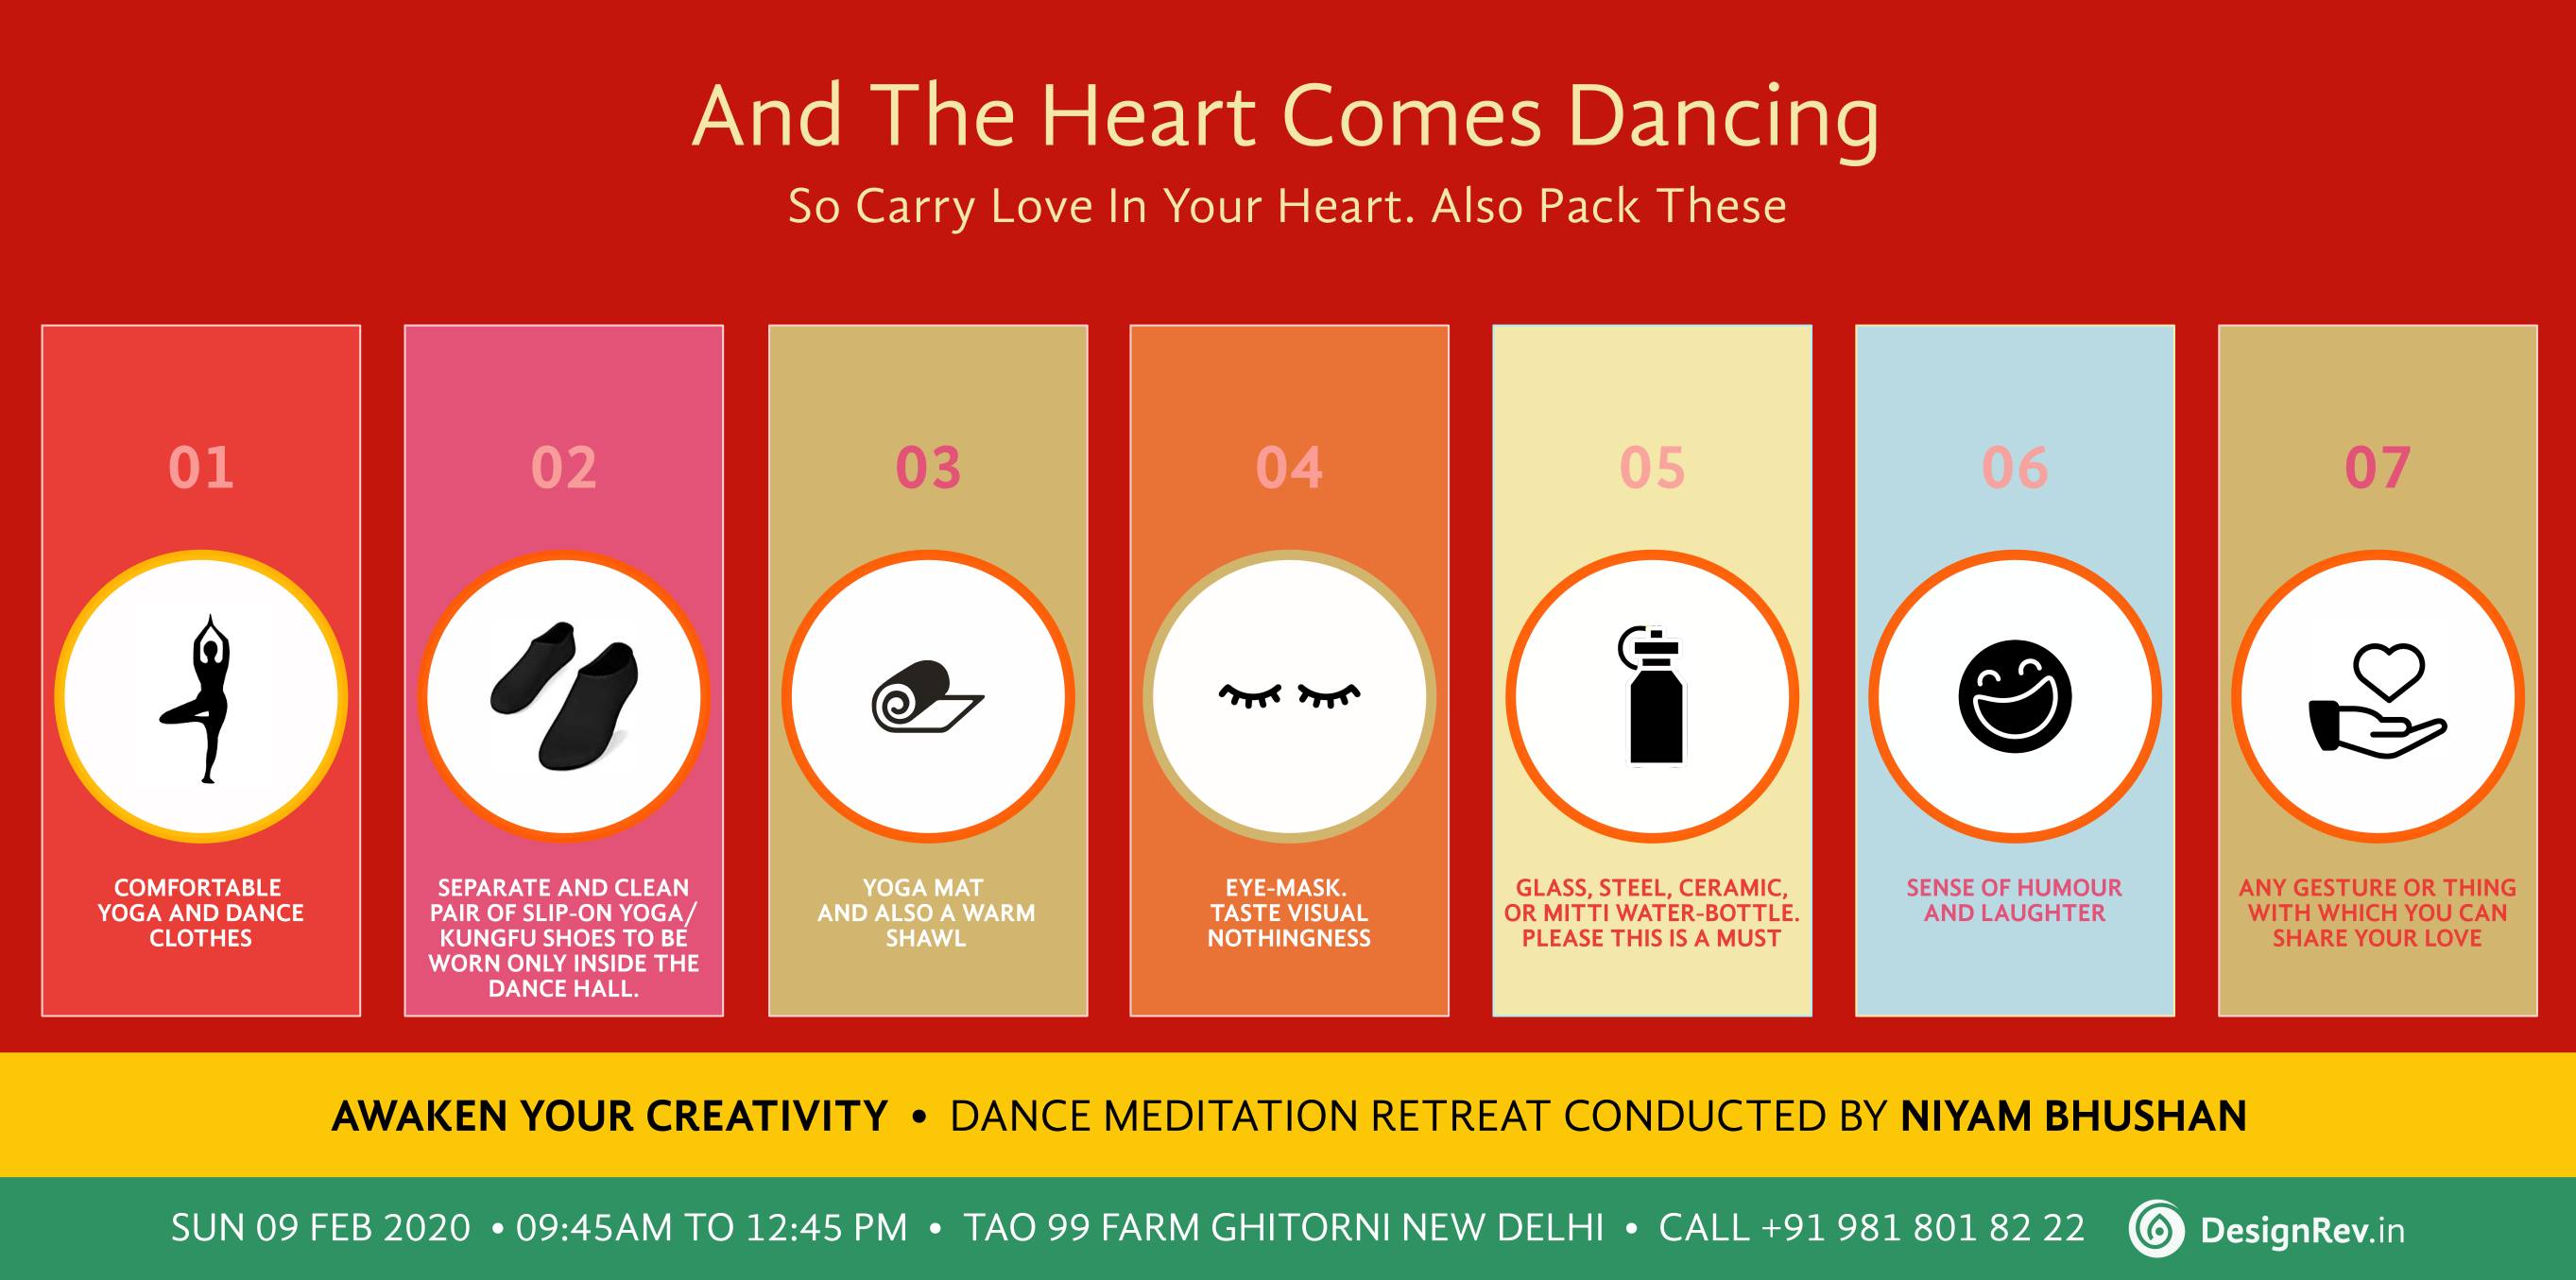 Heart Comes Dancing. What to pack for 'Awaken Your Creatvitiy' meditation conducted by Niyam Bhushan, 09 Feb 2020, New Delhi